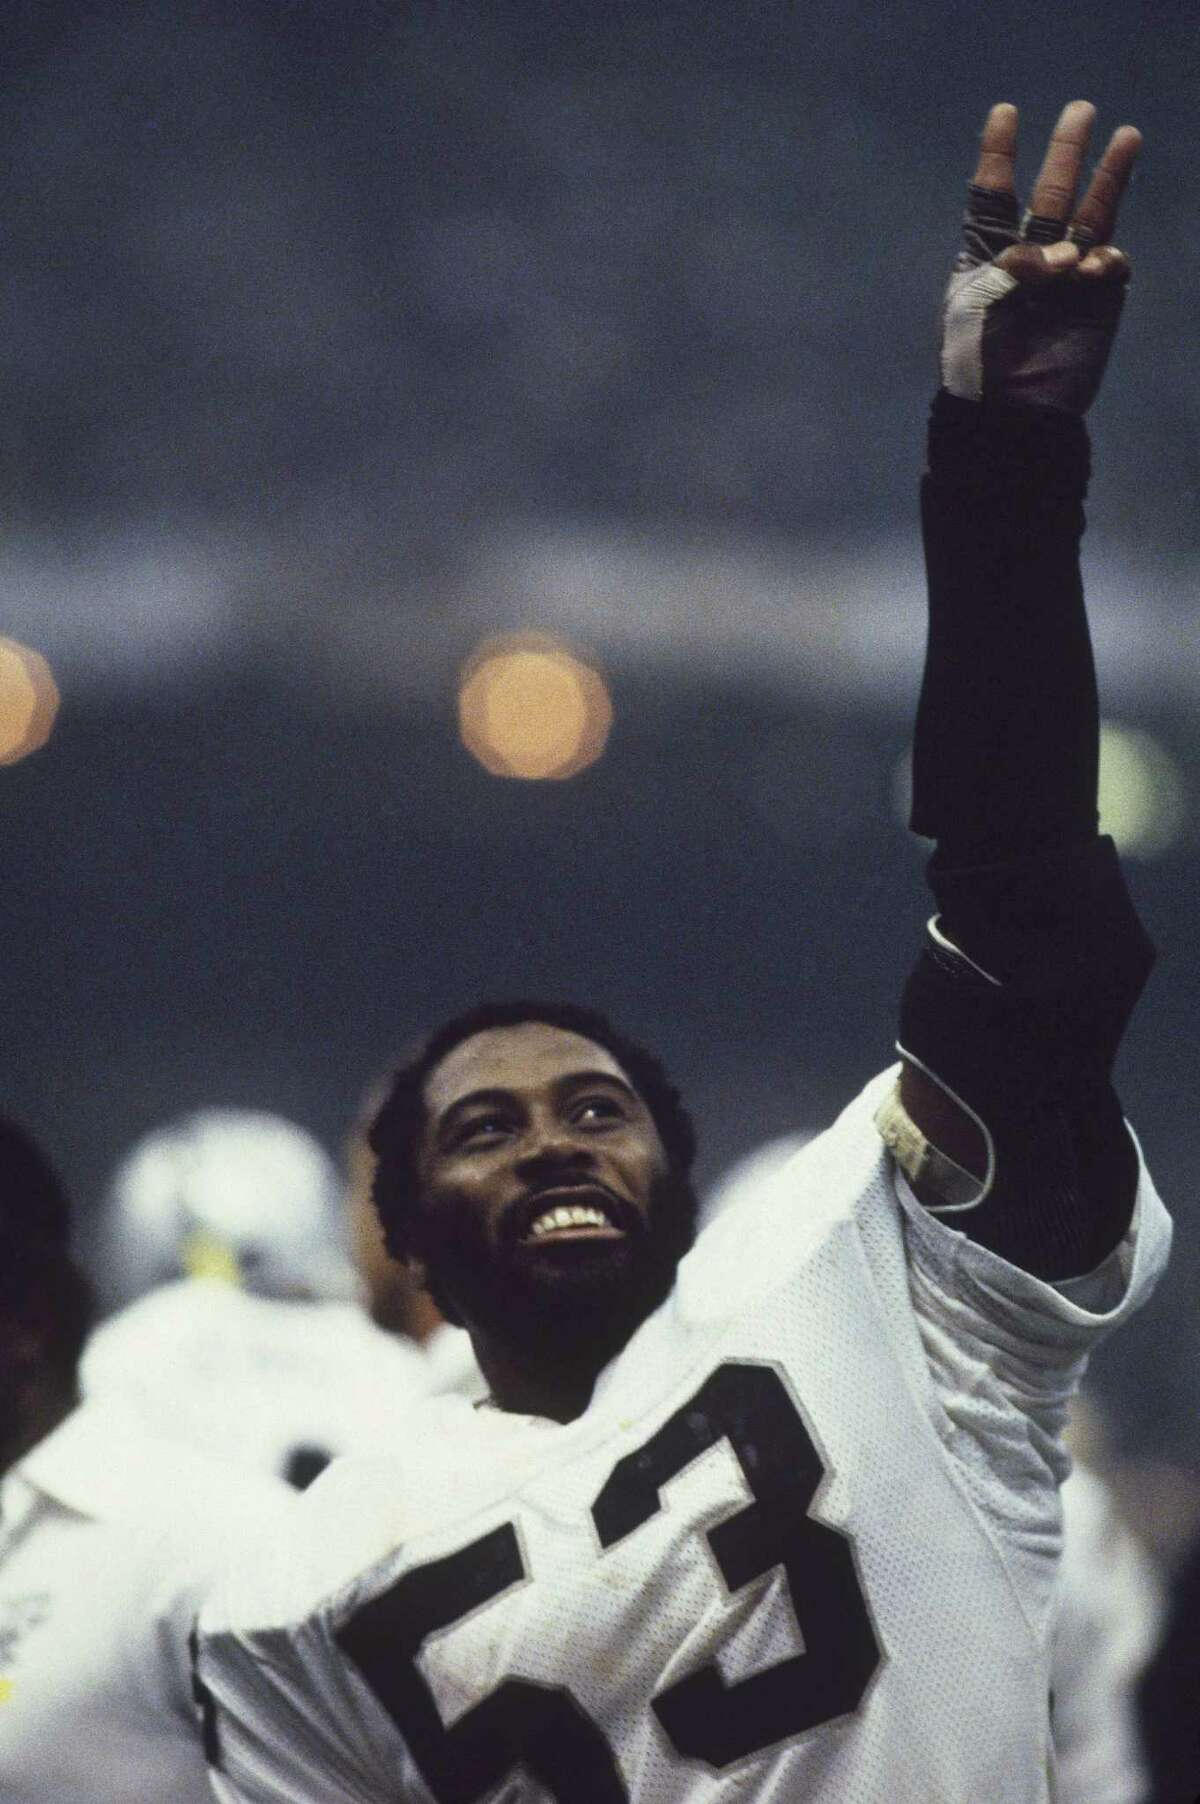 Rod Martin, Super Bowl XV The Raiders linebacker arguably had a case for MVP honors after snagging a Super Bowl-record three interceptions in Oakland's 27-10 win over Philadelphia.